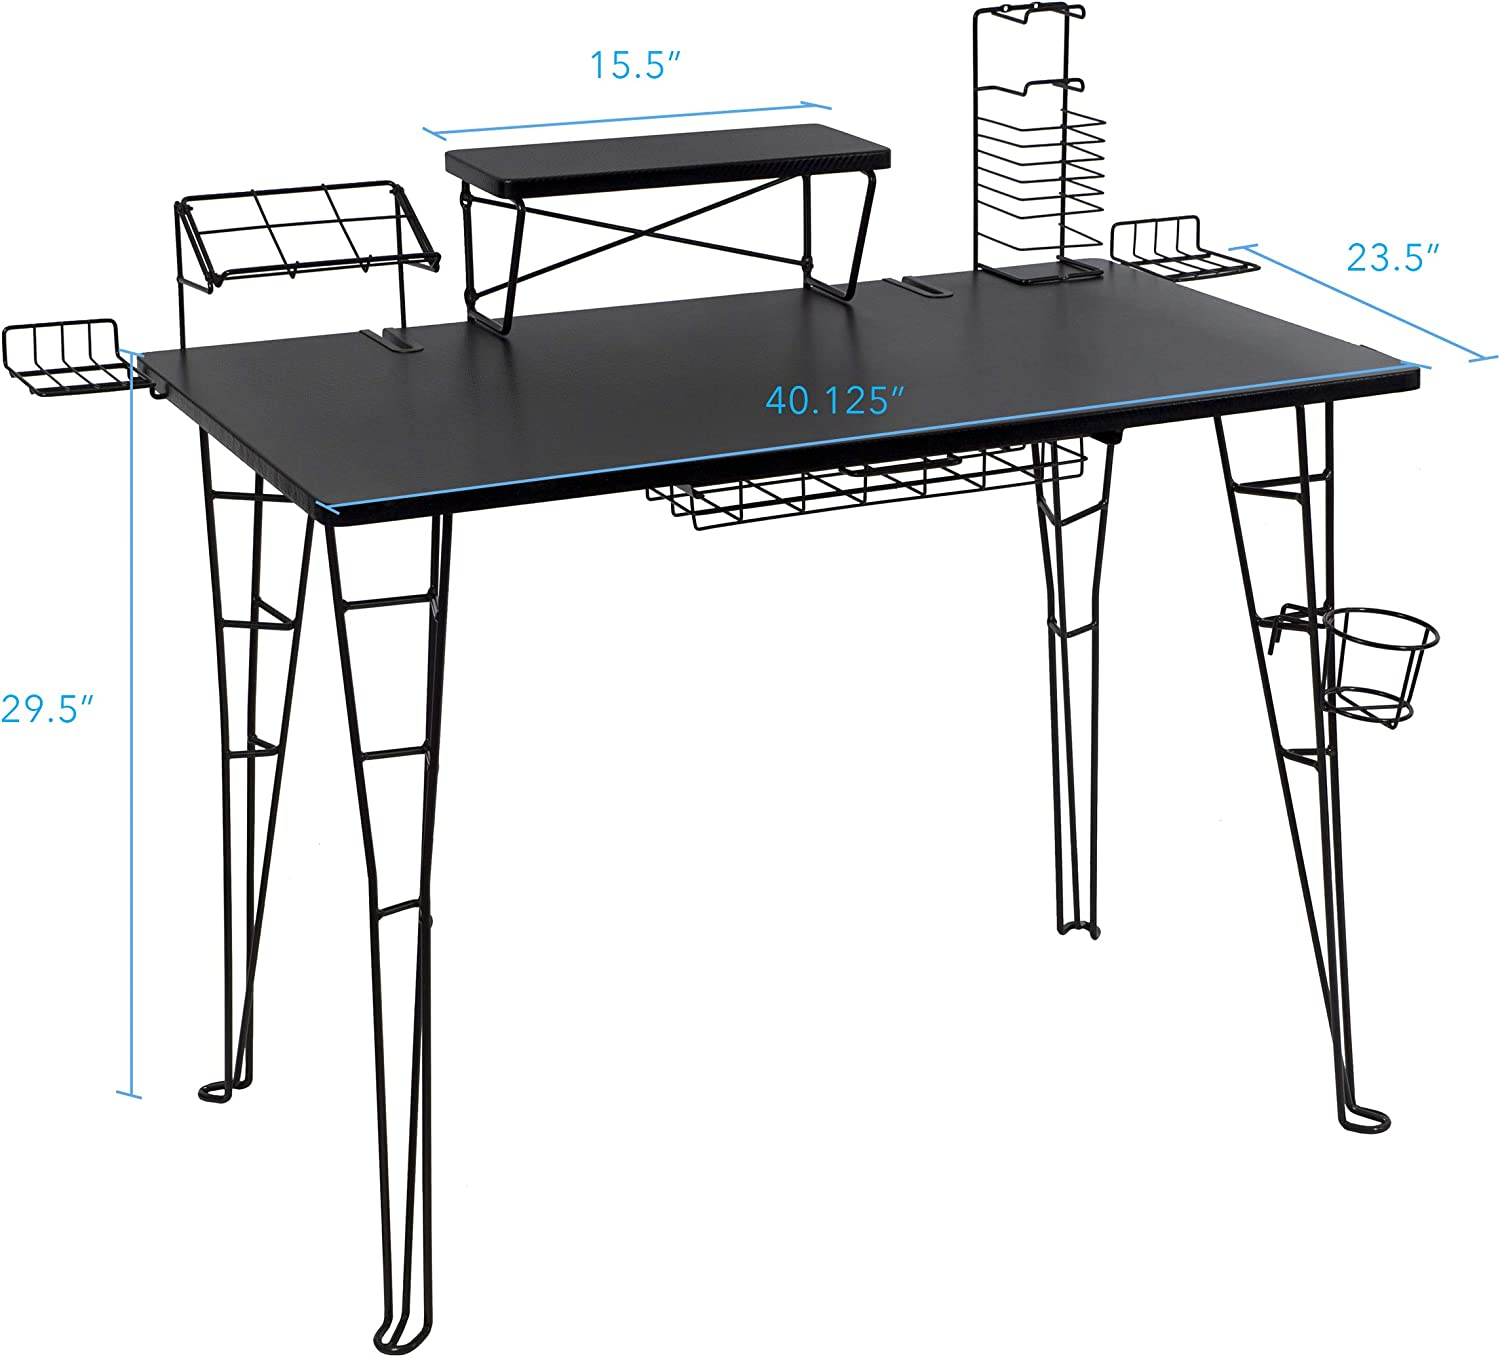 The Best Gaming Desk